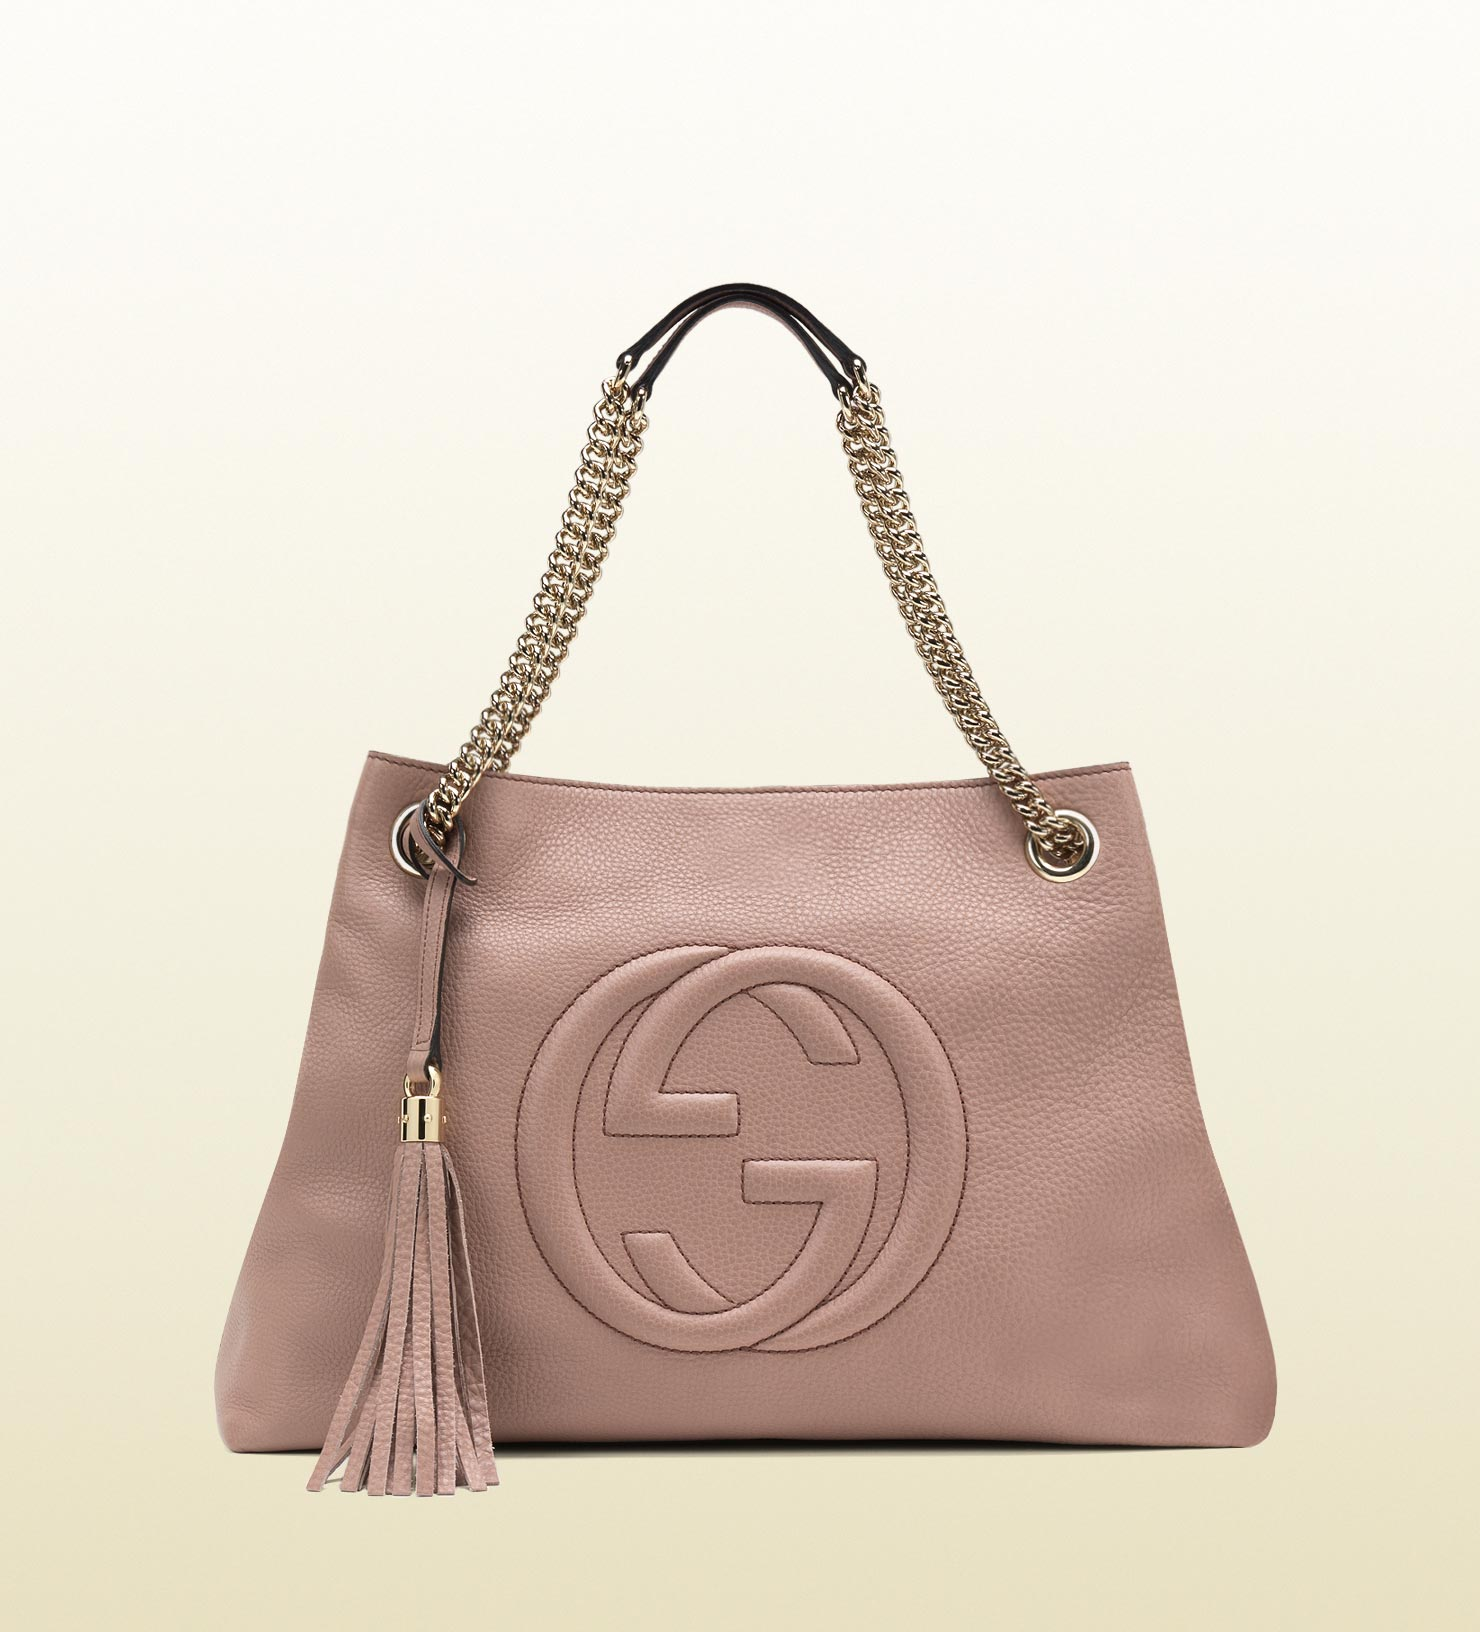 Lyst - Gucci Soho Leather Shoulder Bag in Pink